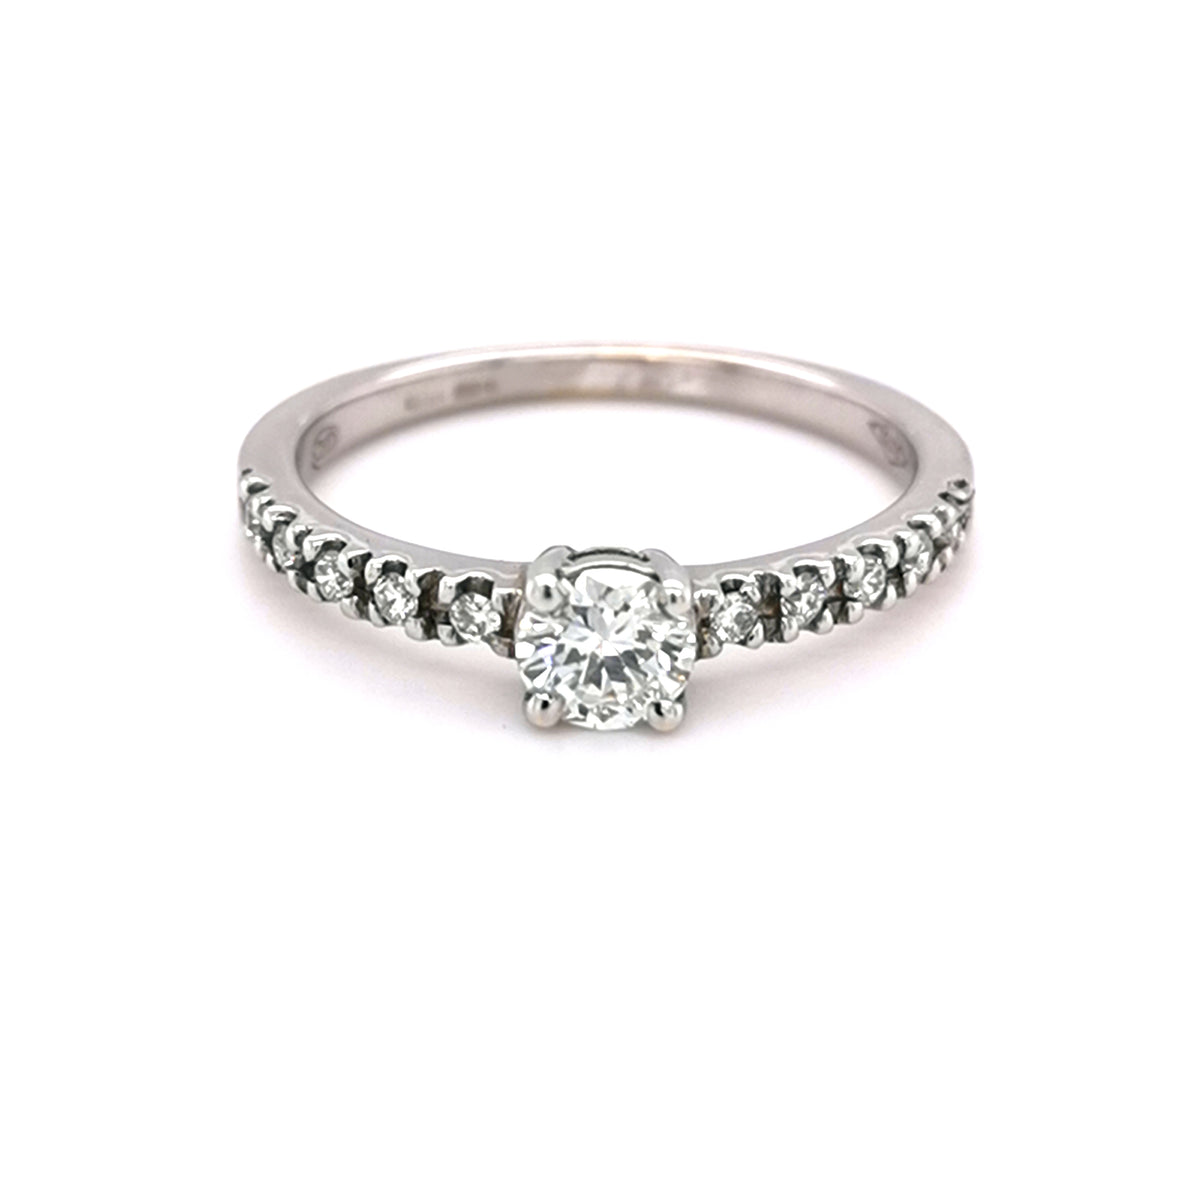 18ct White Gold Diamond Ring - Sonny's Jewellers